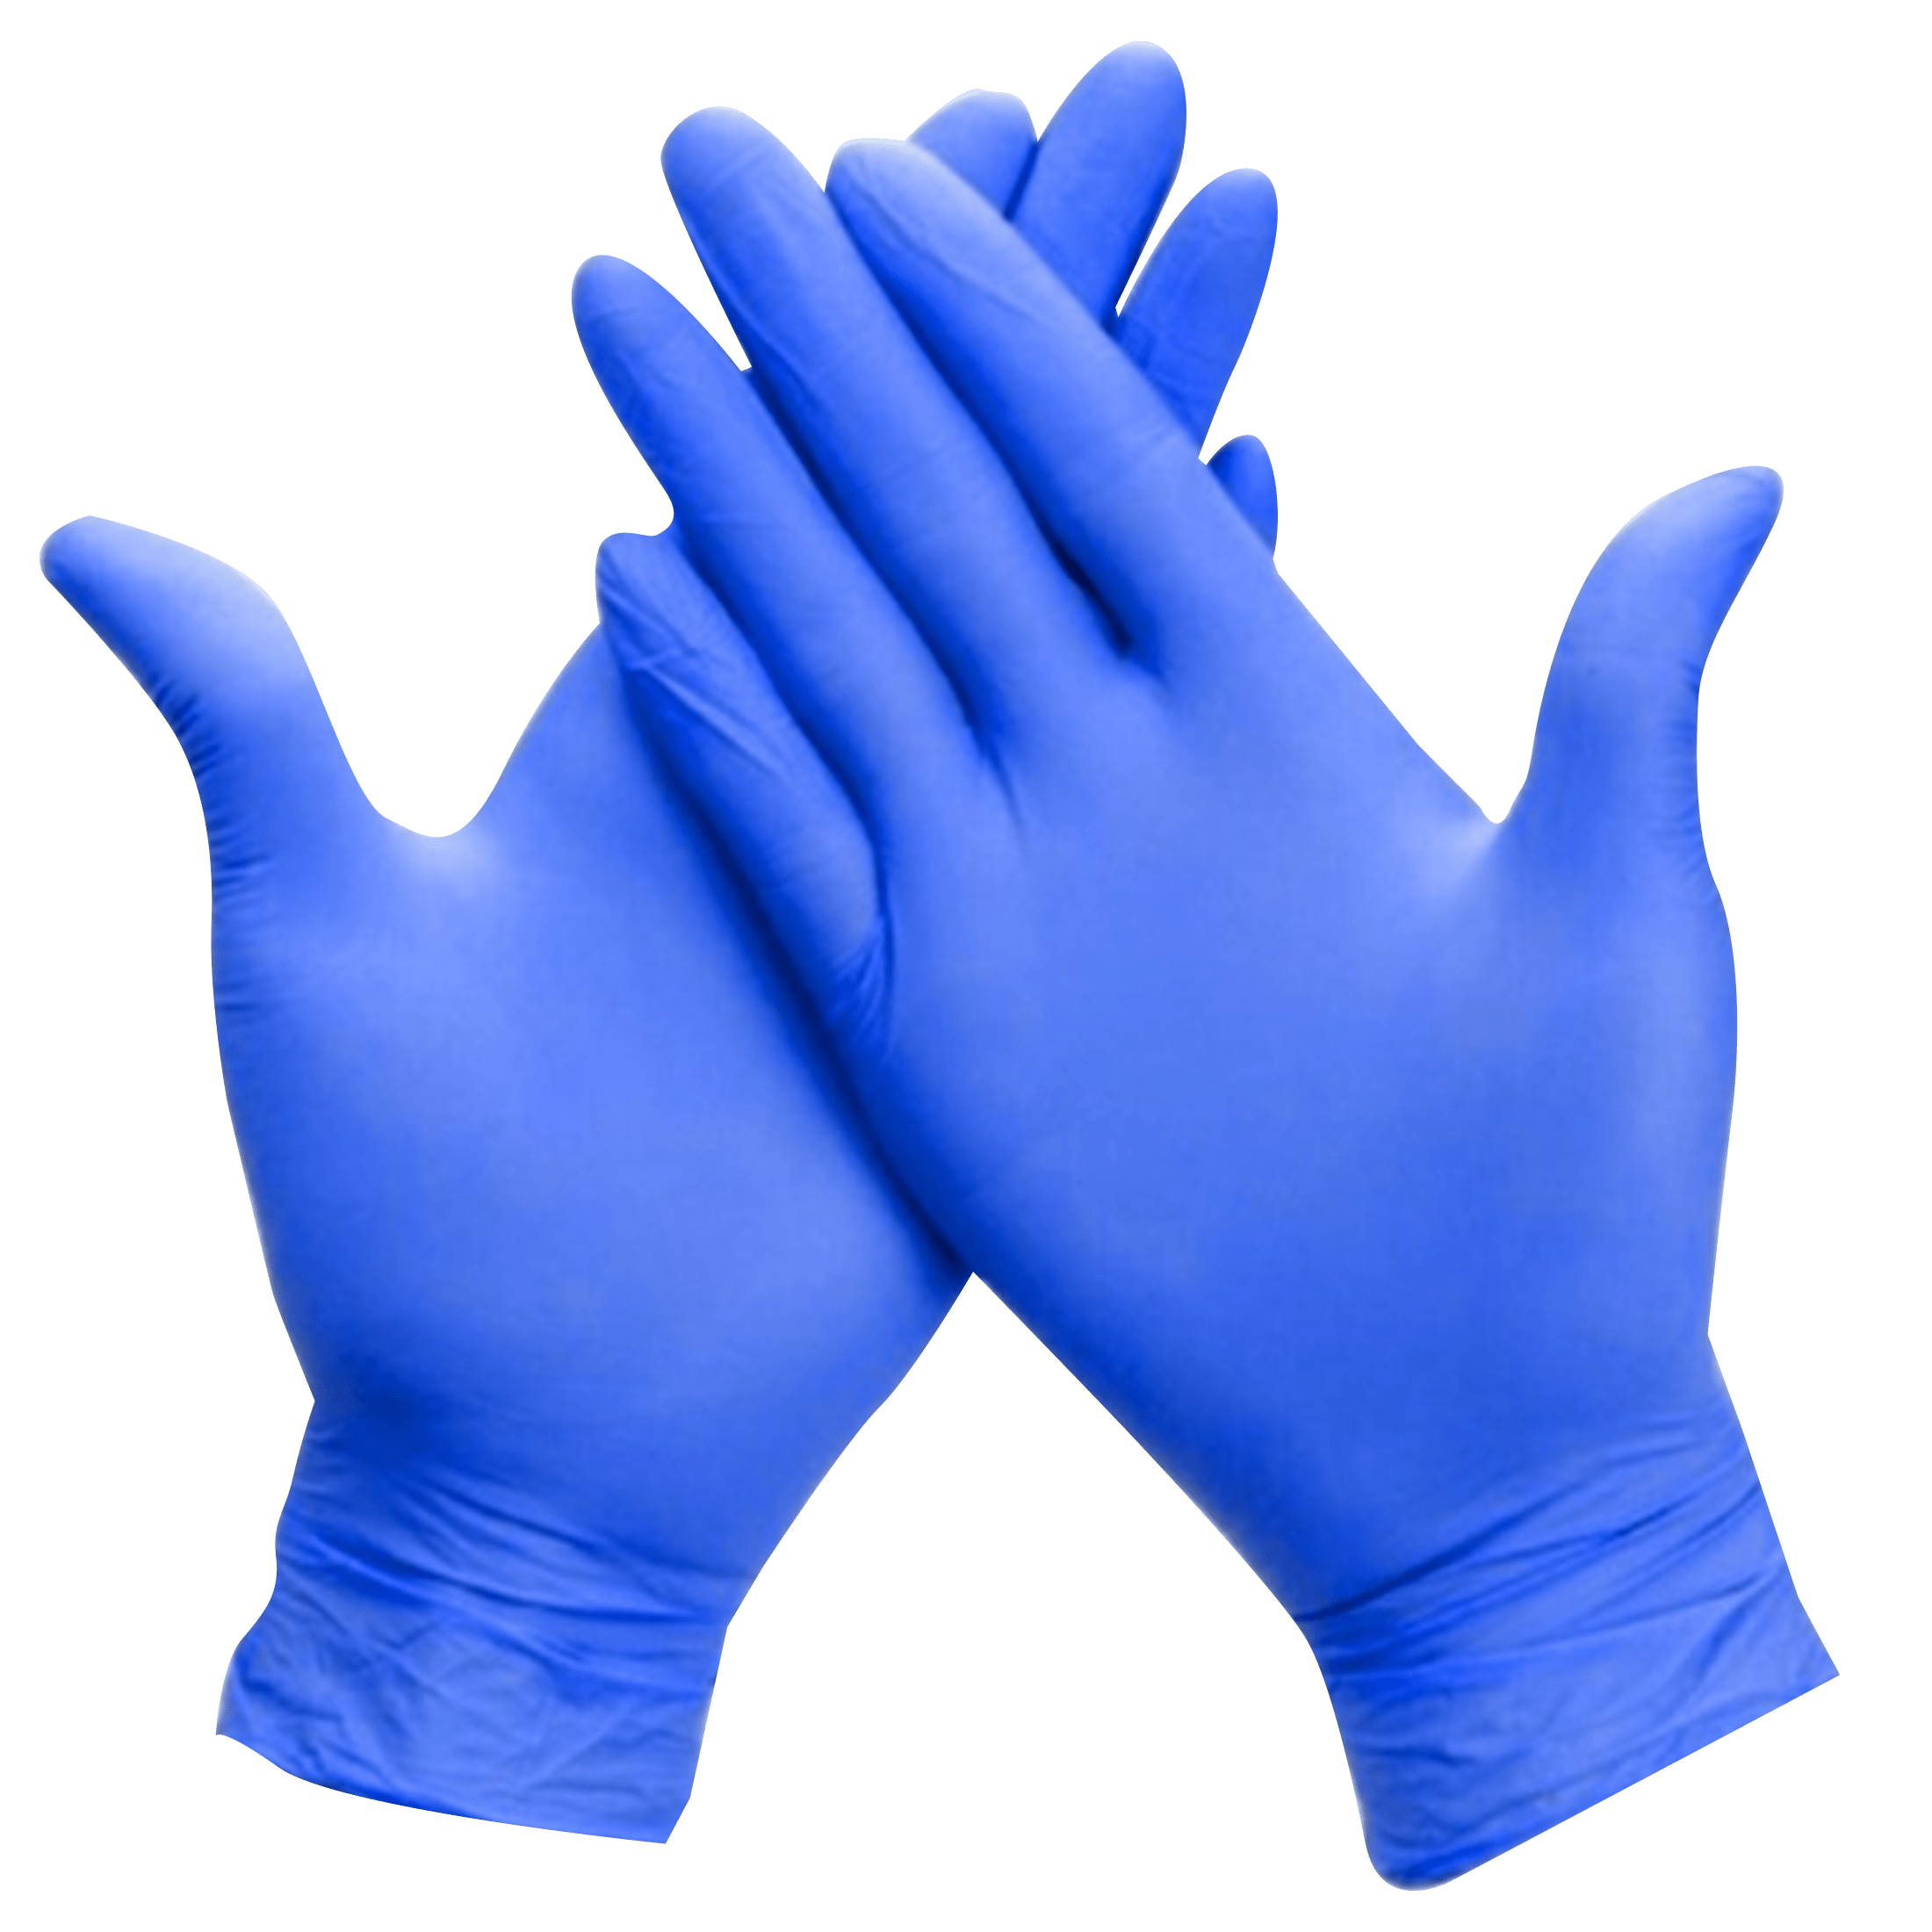 Wholesale Nitrile Gloves: Safety Protection You Can Trust